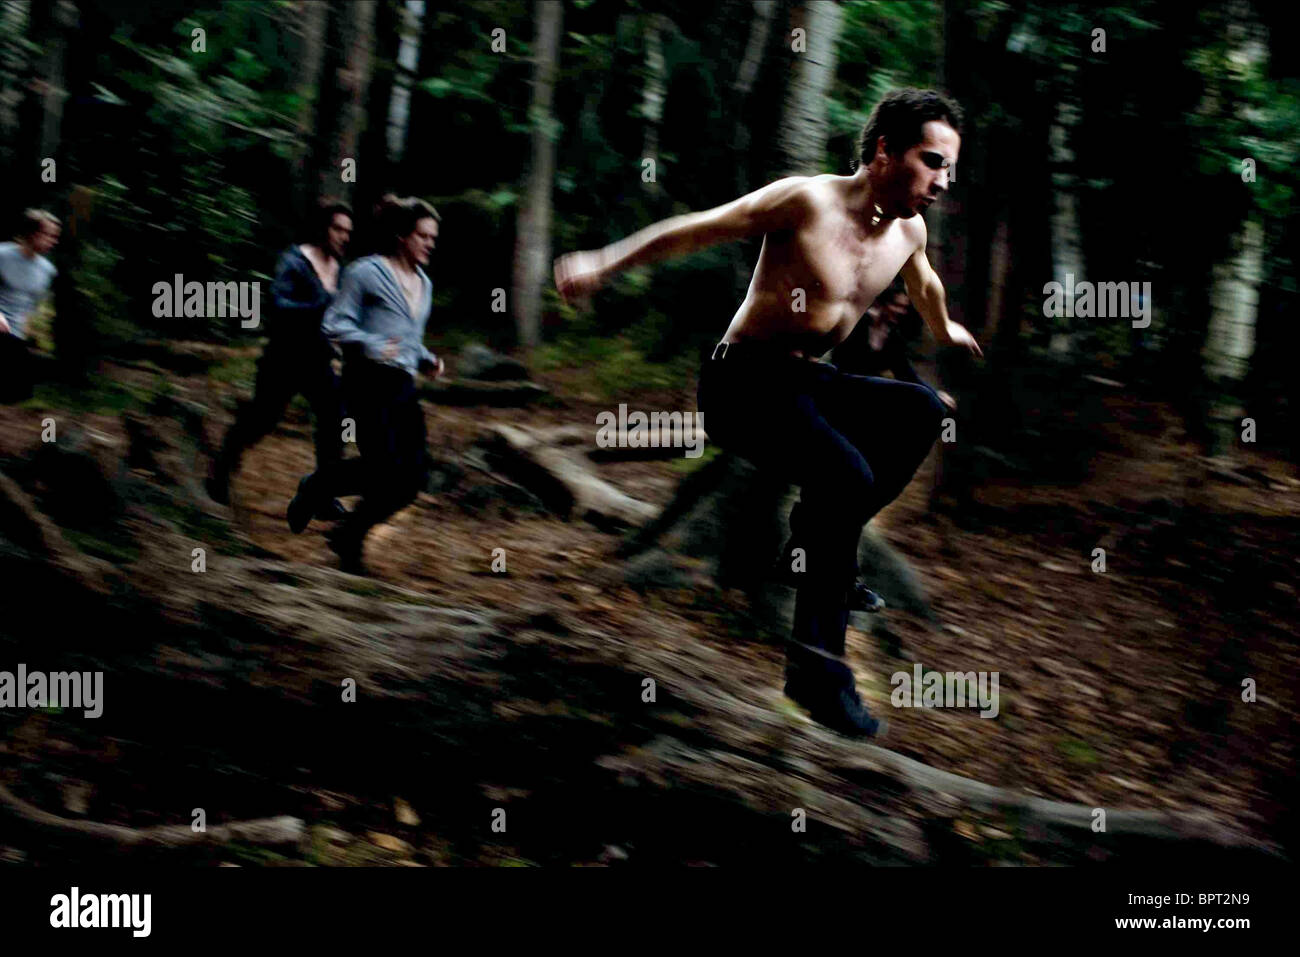 CHASE SCENE BLOOD AND CHOCOLATE (2007 Stock Photo, Royalty Free ...